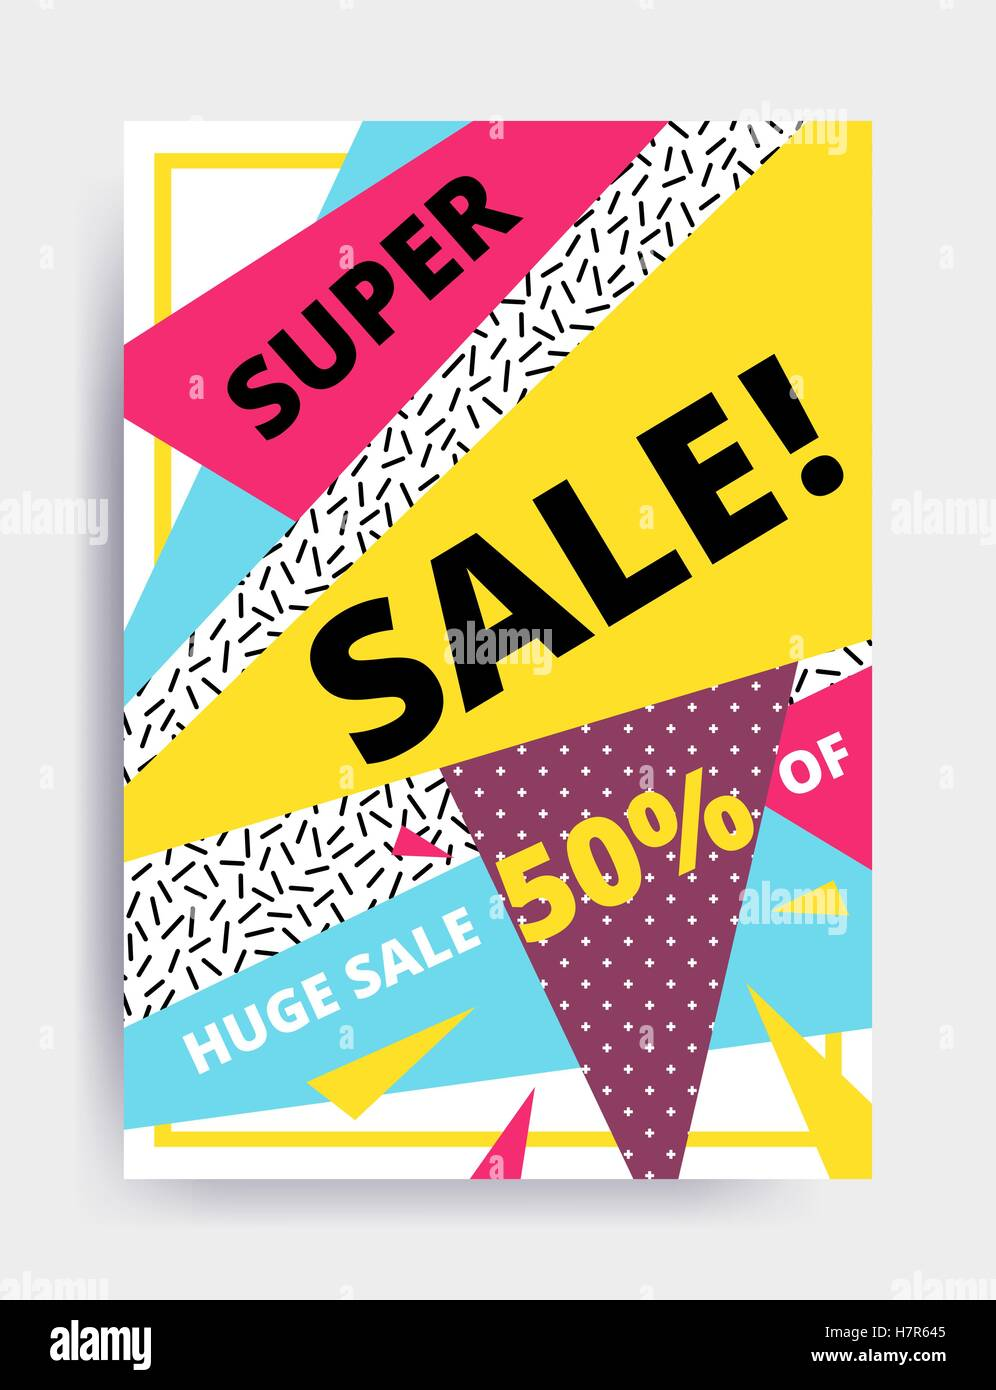 Poster design website -  Flat Design Eye Catching Sale Website Banner Template Bright Colorful Vector Illustrations For Social Media